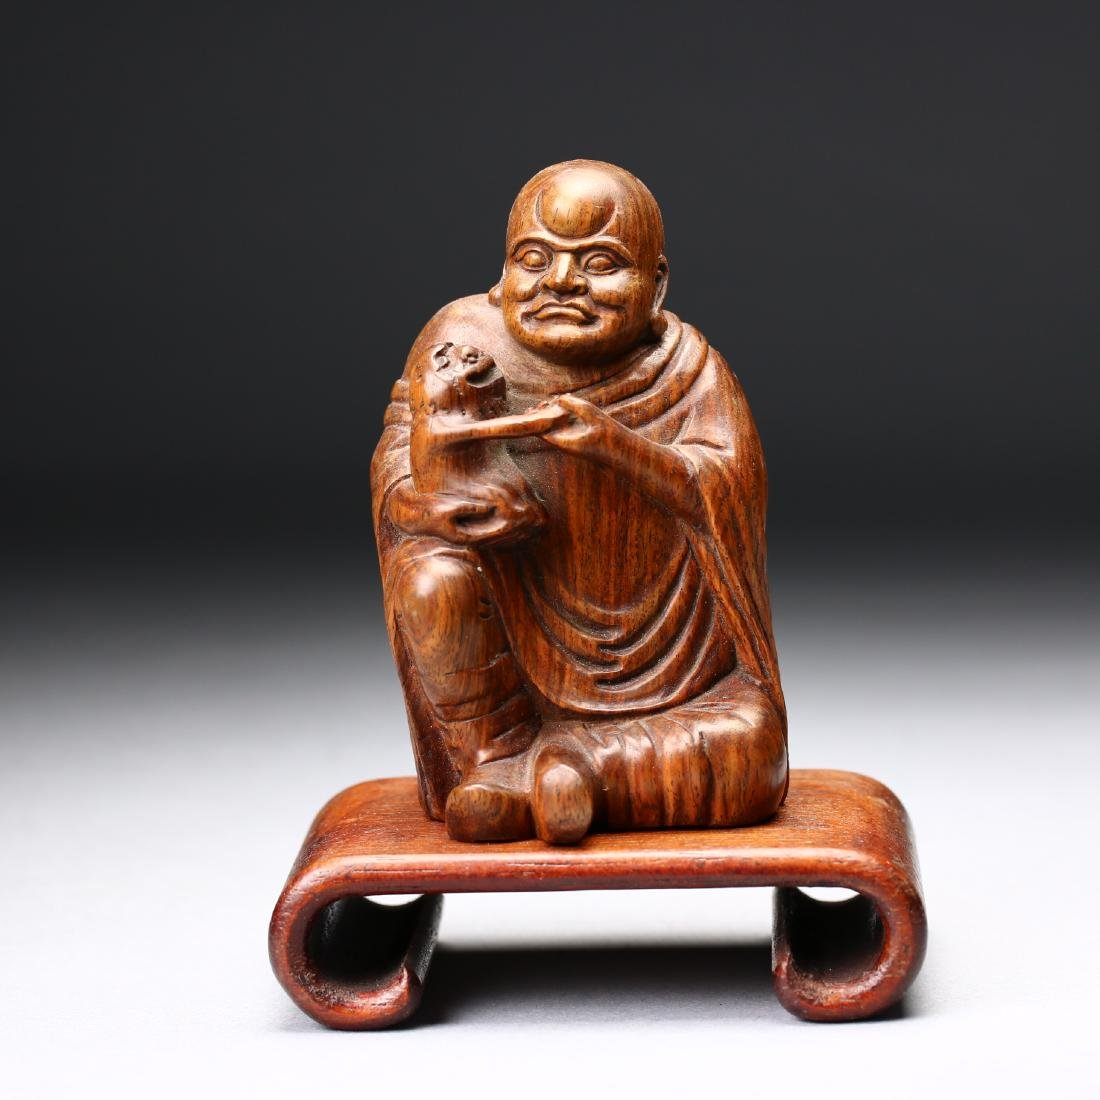 A Chinese Huangyang Wood Carved Figure